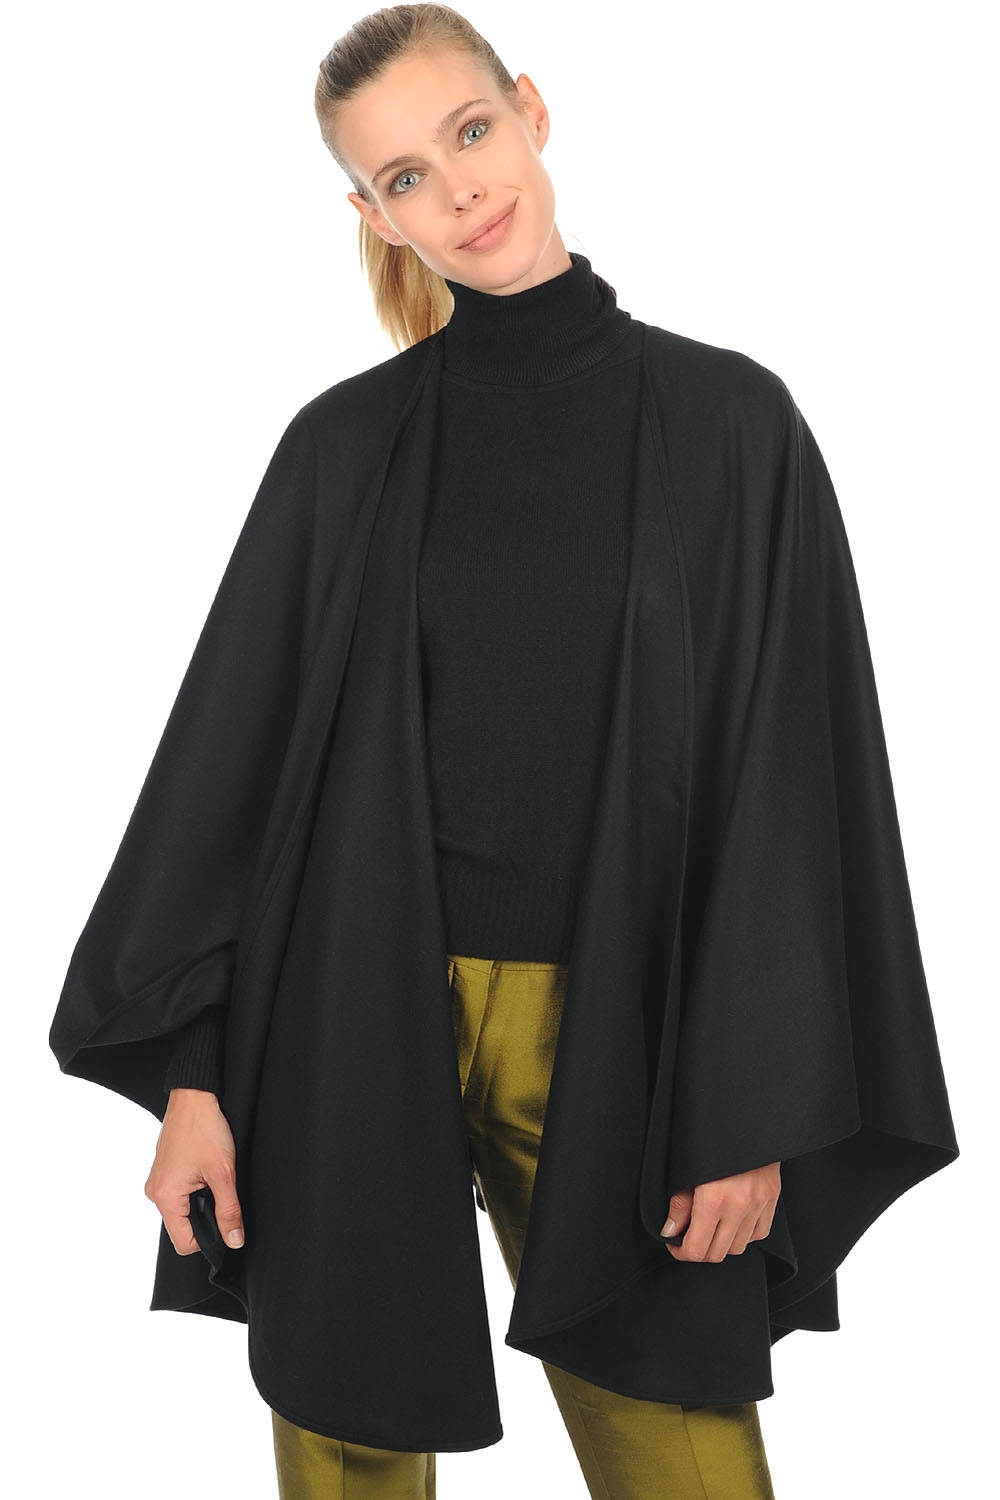 vicuna accessories shawls vicunacape black one size